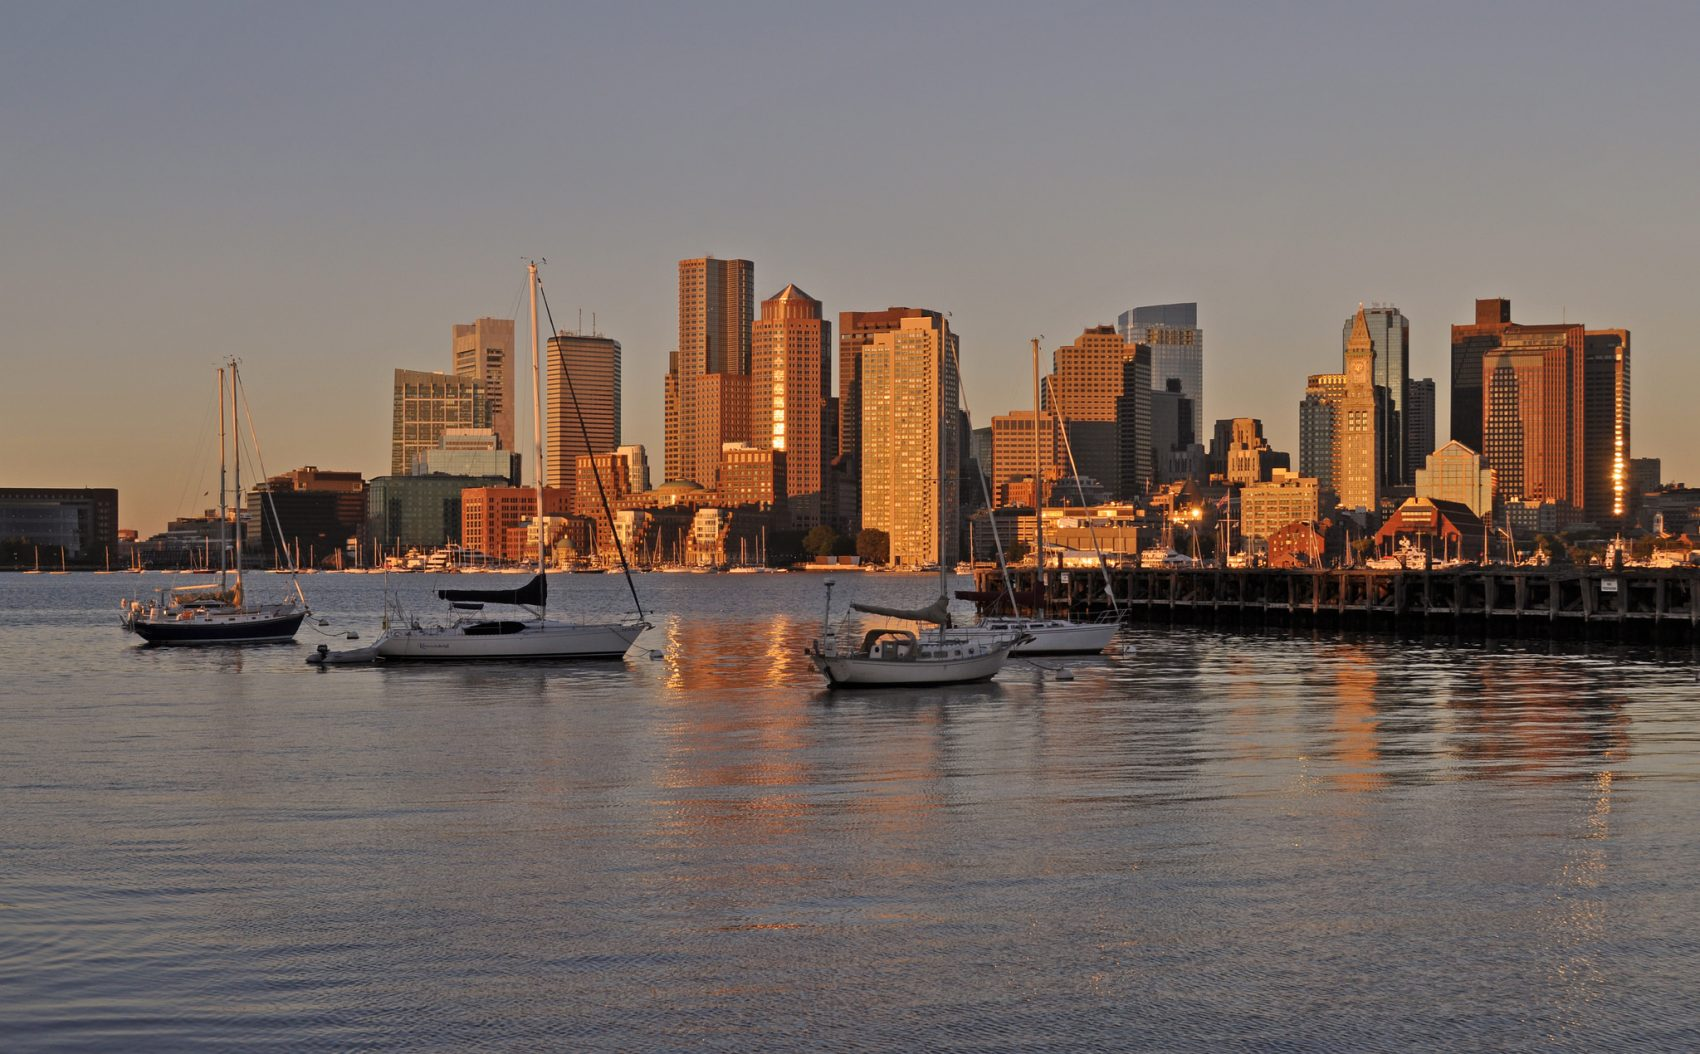 Massachusetts scored big points for its rankings in health care, education and the local economy. (Harshll Shah/Flickr)